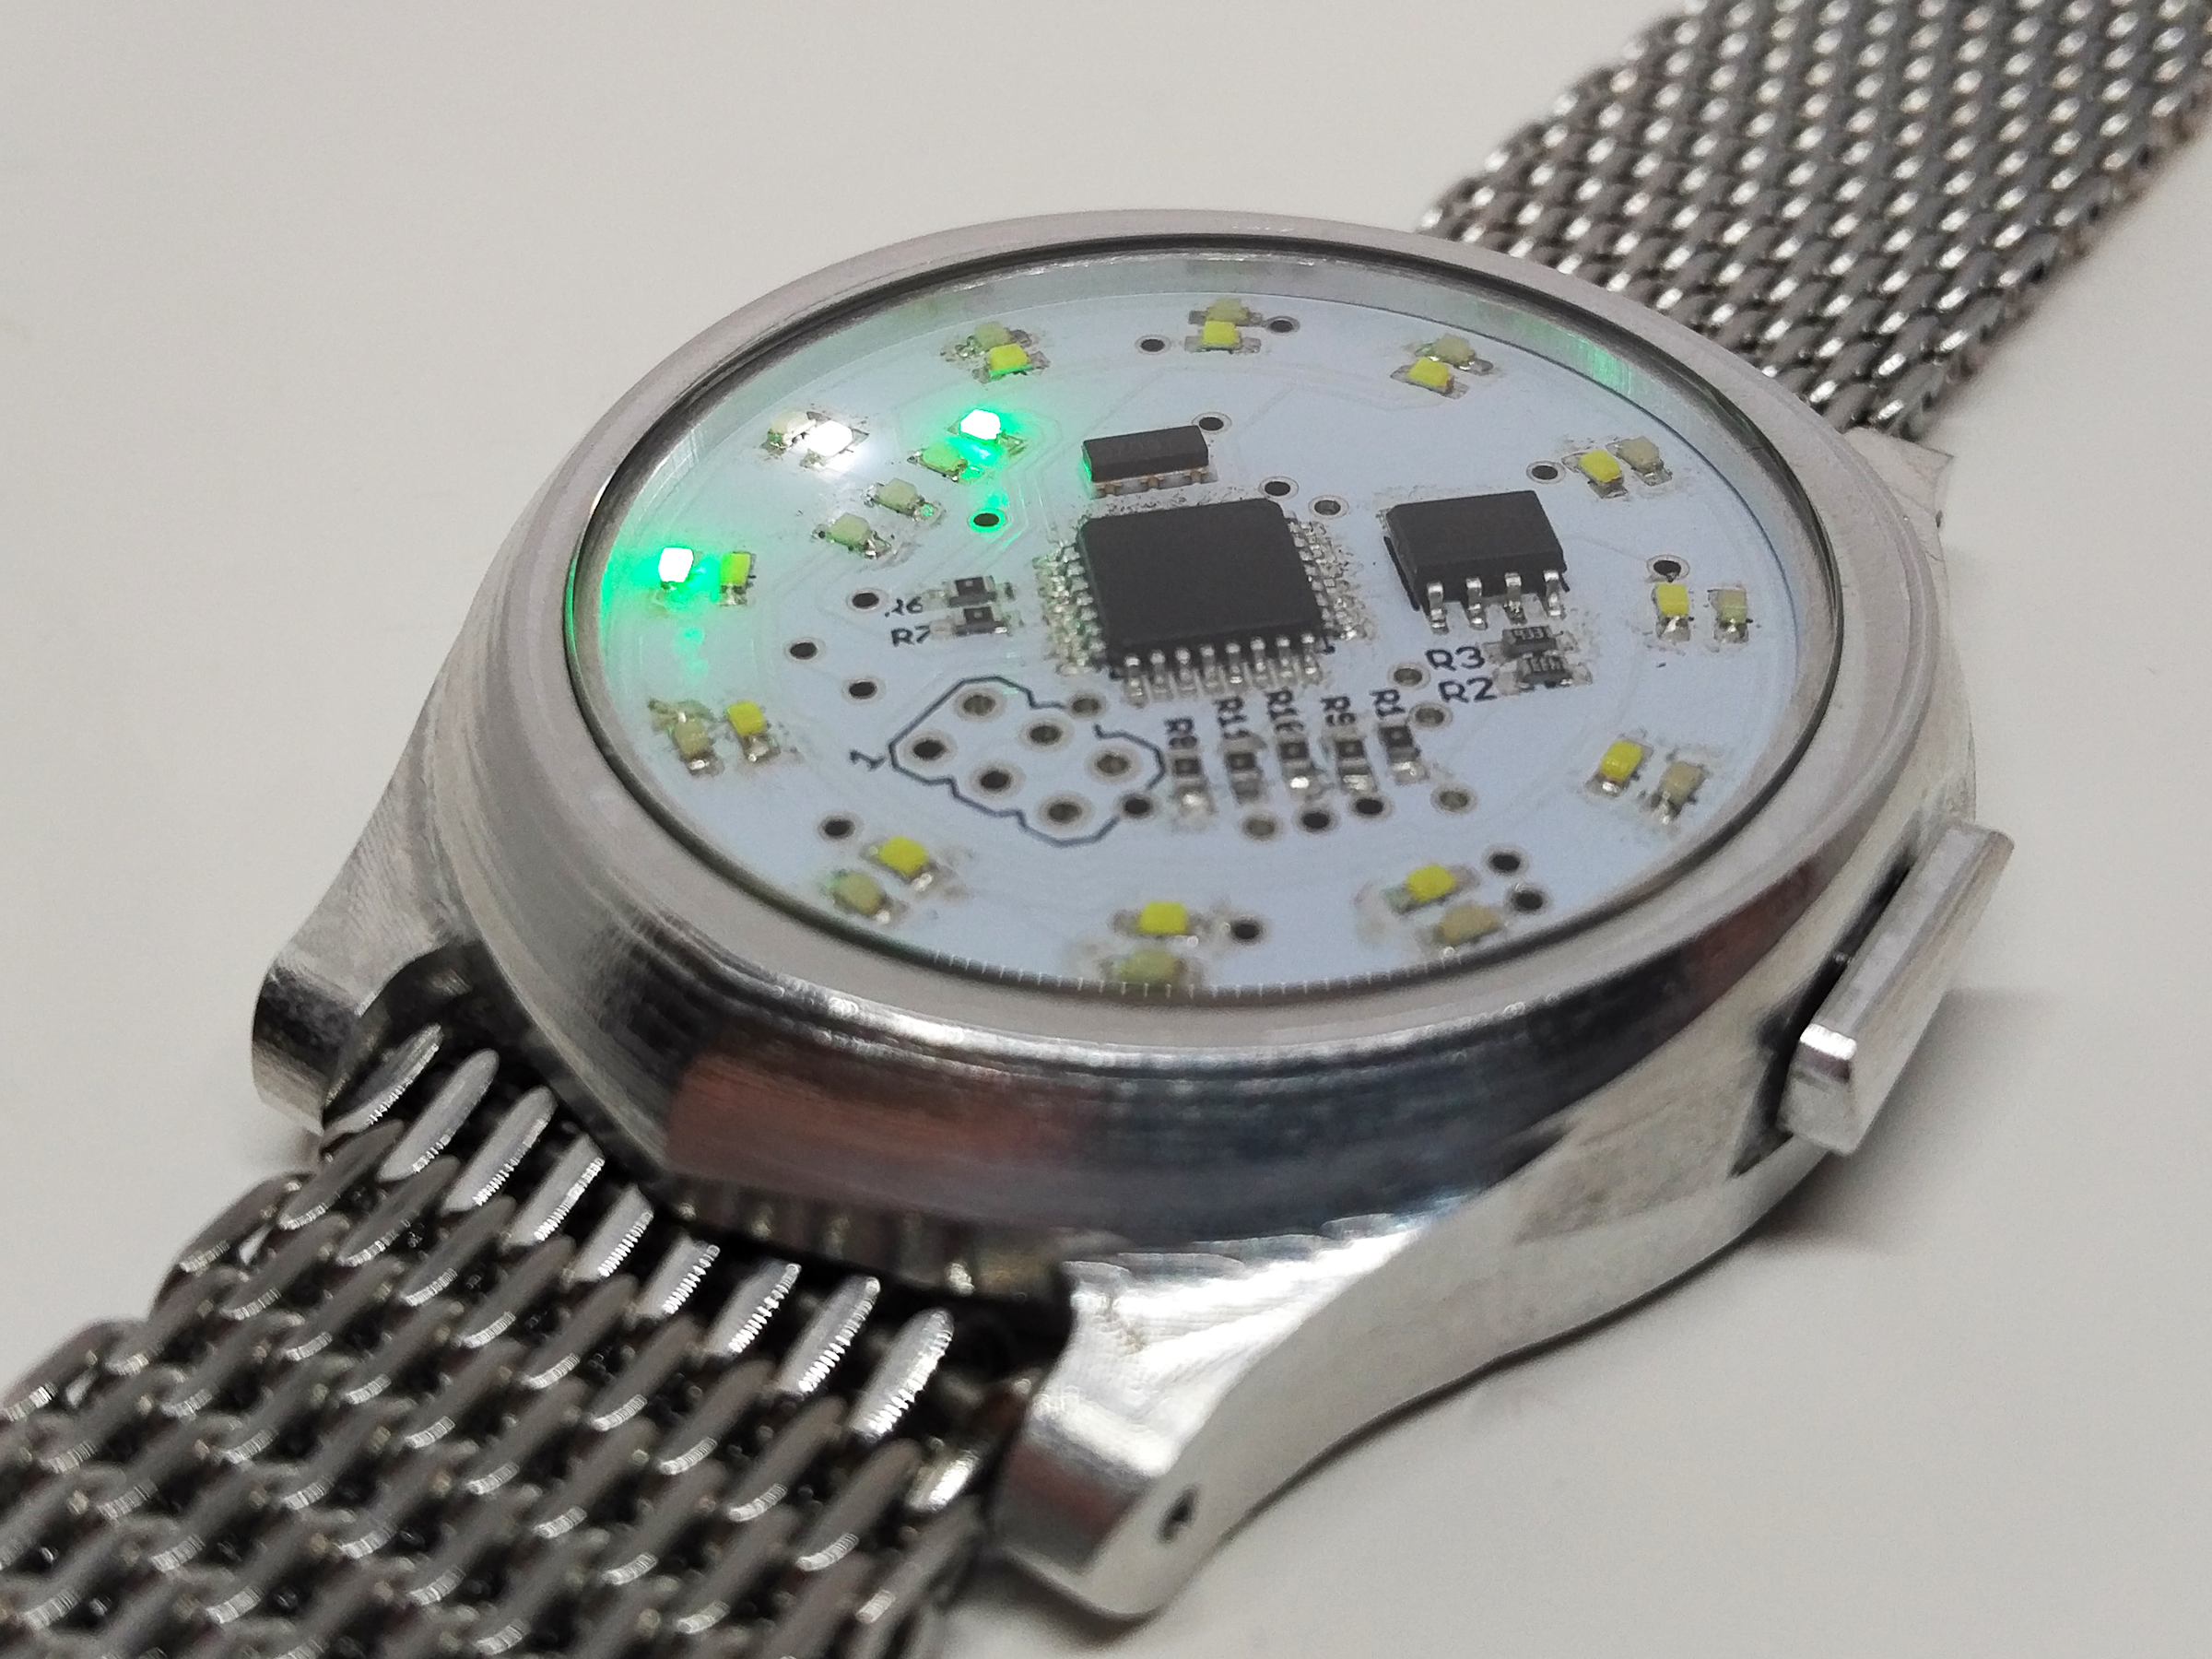 Picture of MechWatch - a Custom Digital Watch